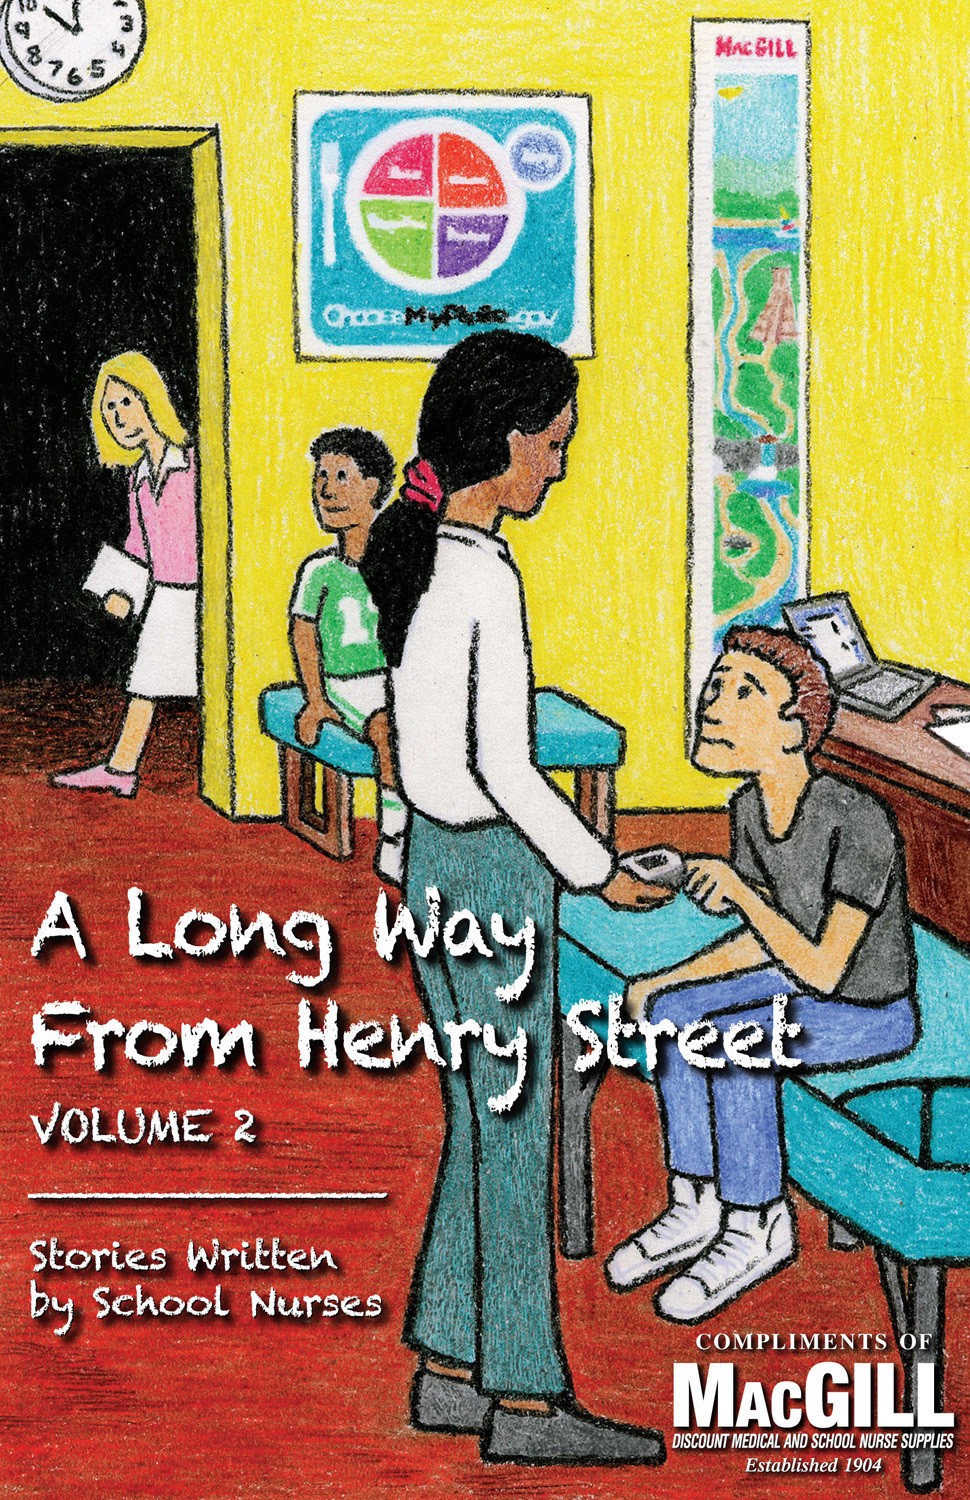 A Long Way from Henry Street, Vol 2 (limit one per order)